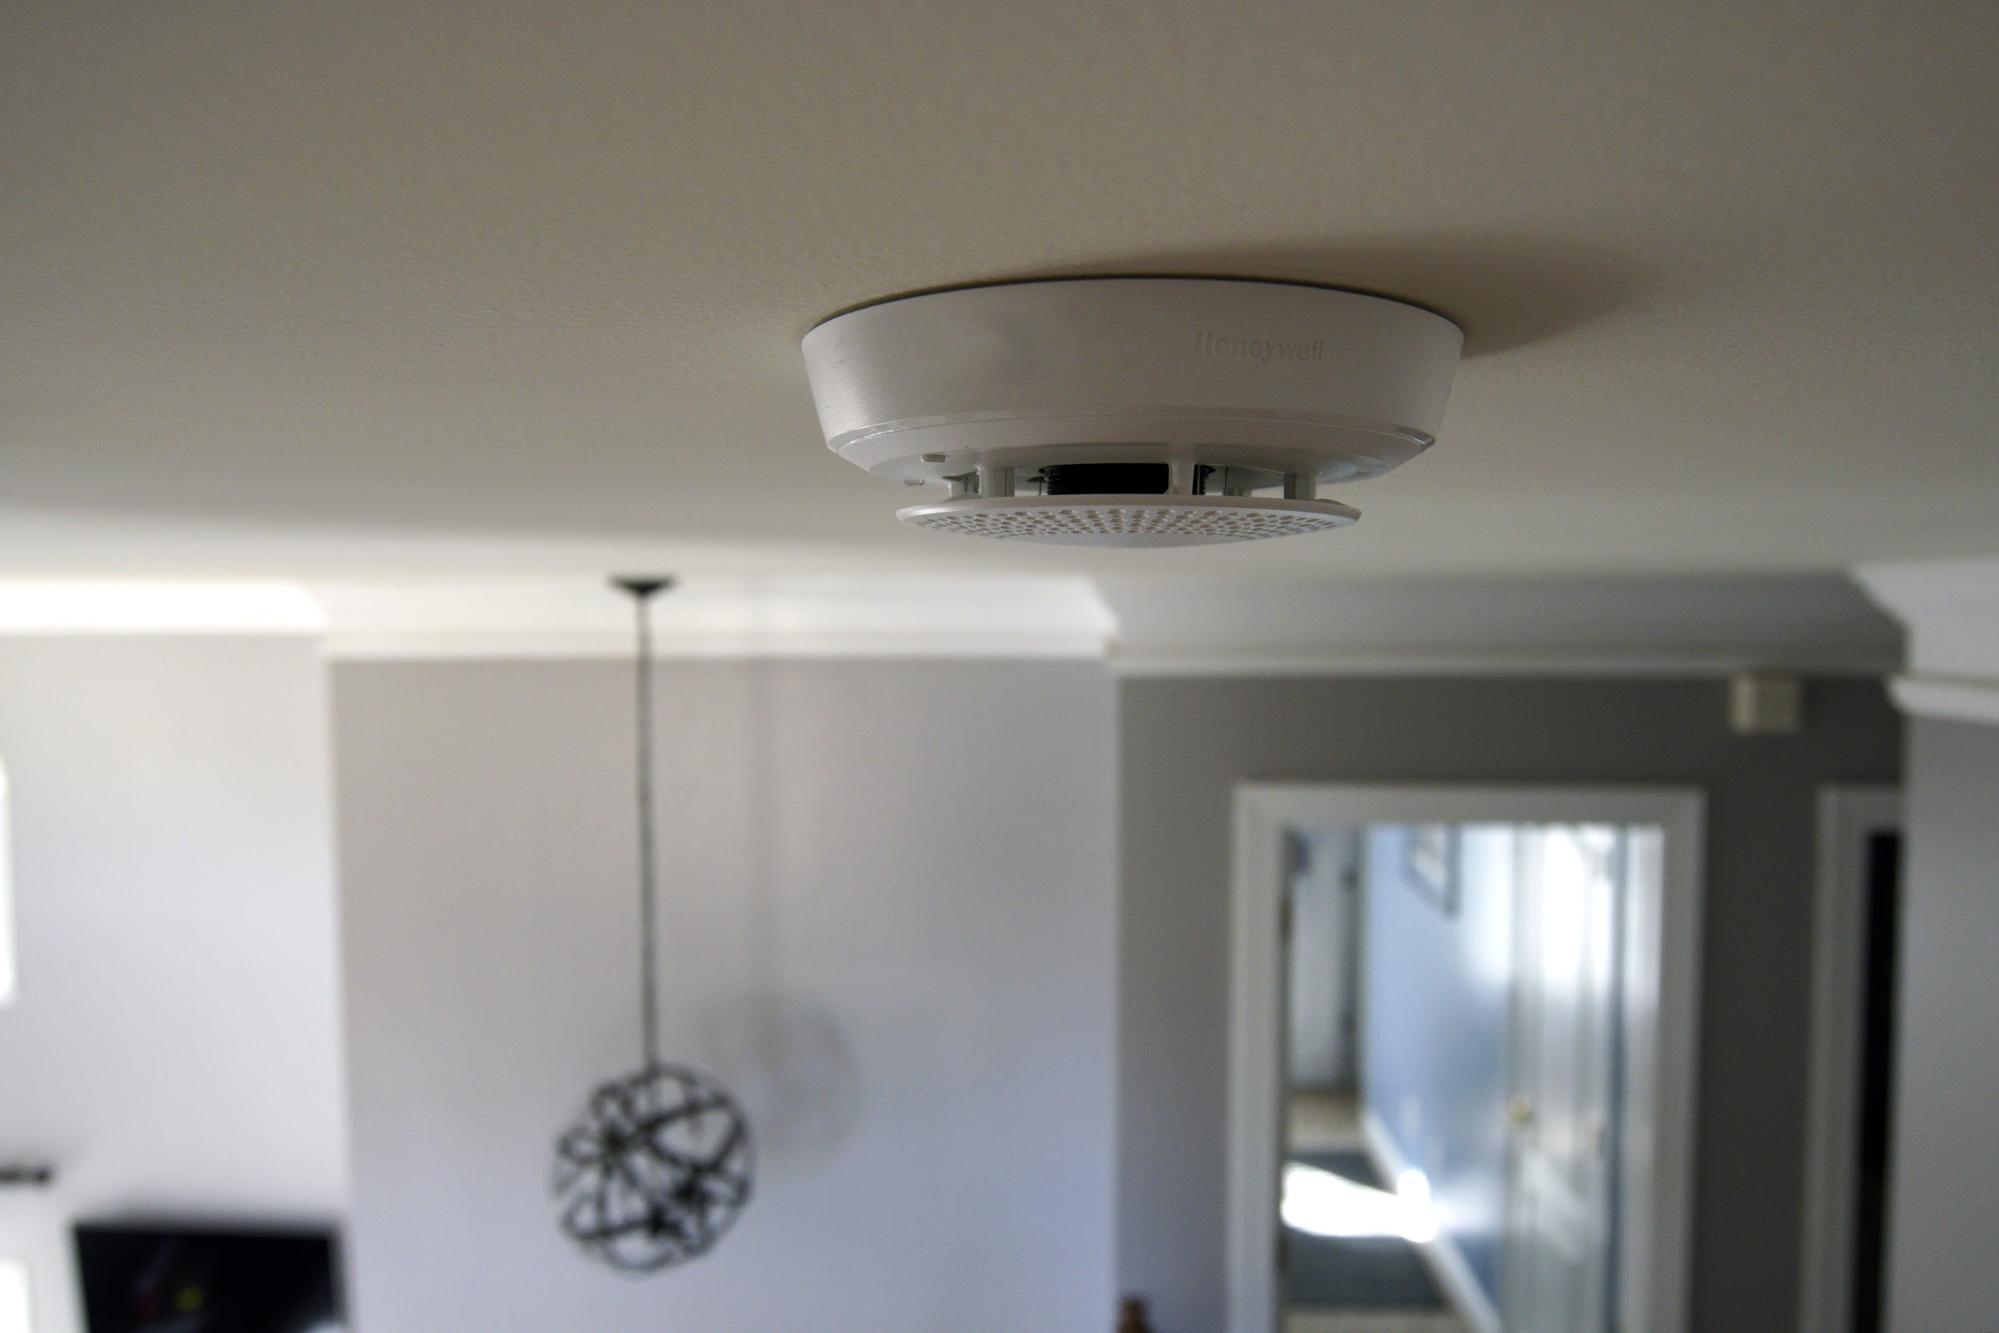 Smoke alarm batteries should be changed about once a year.